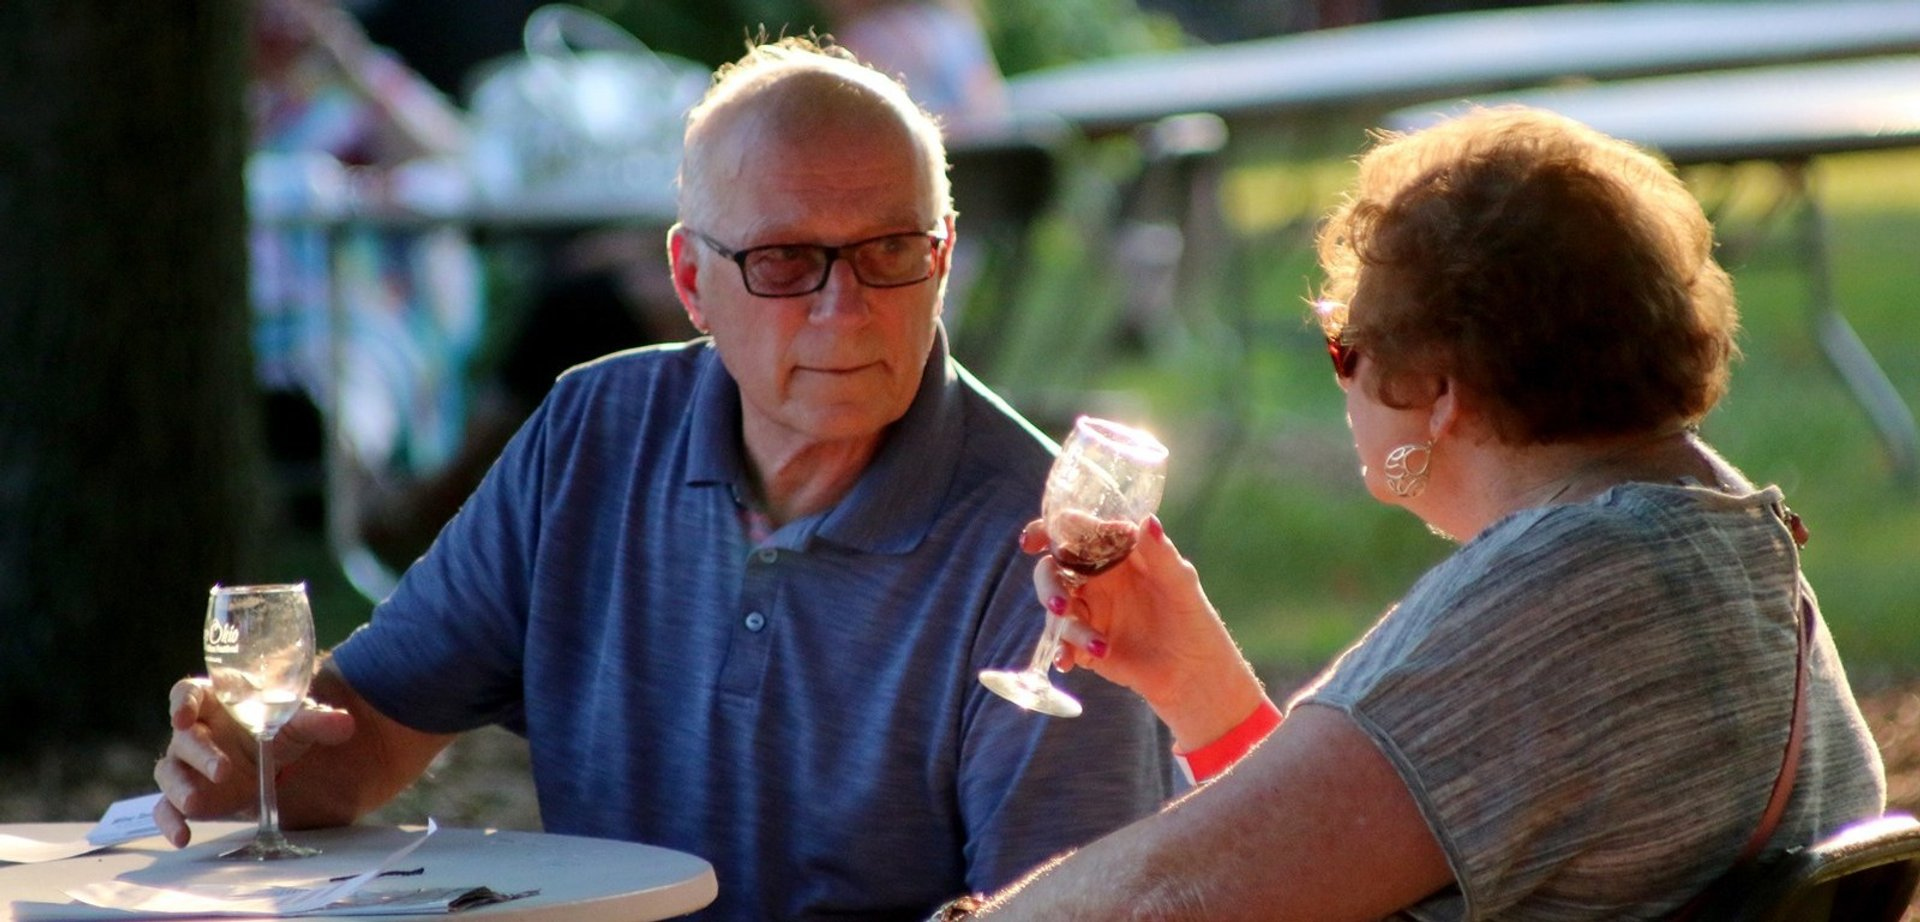 Vintage Ohio Wine Festival in Ohio - Best Season 2020